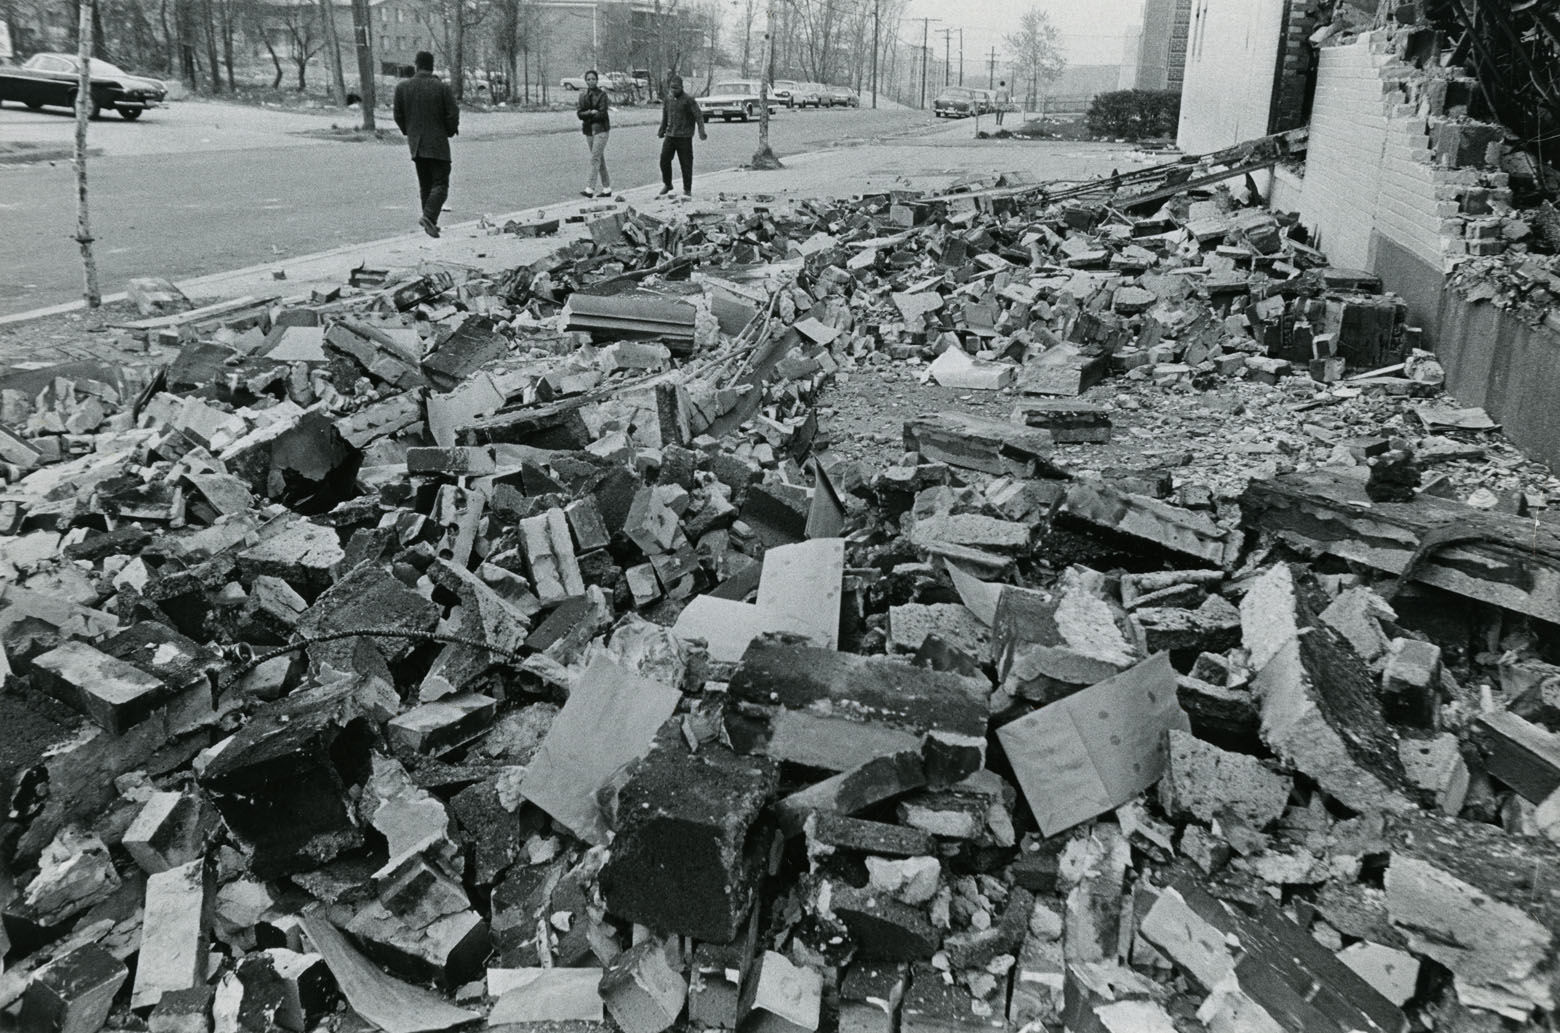 A pile of rubble mars a D.C. street corner. Reprinted with permission of the DC Public Library, Star Collection, © Washington Post.